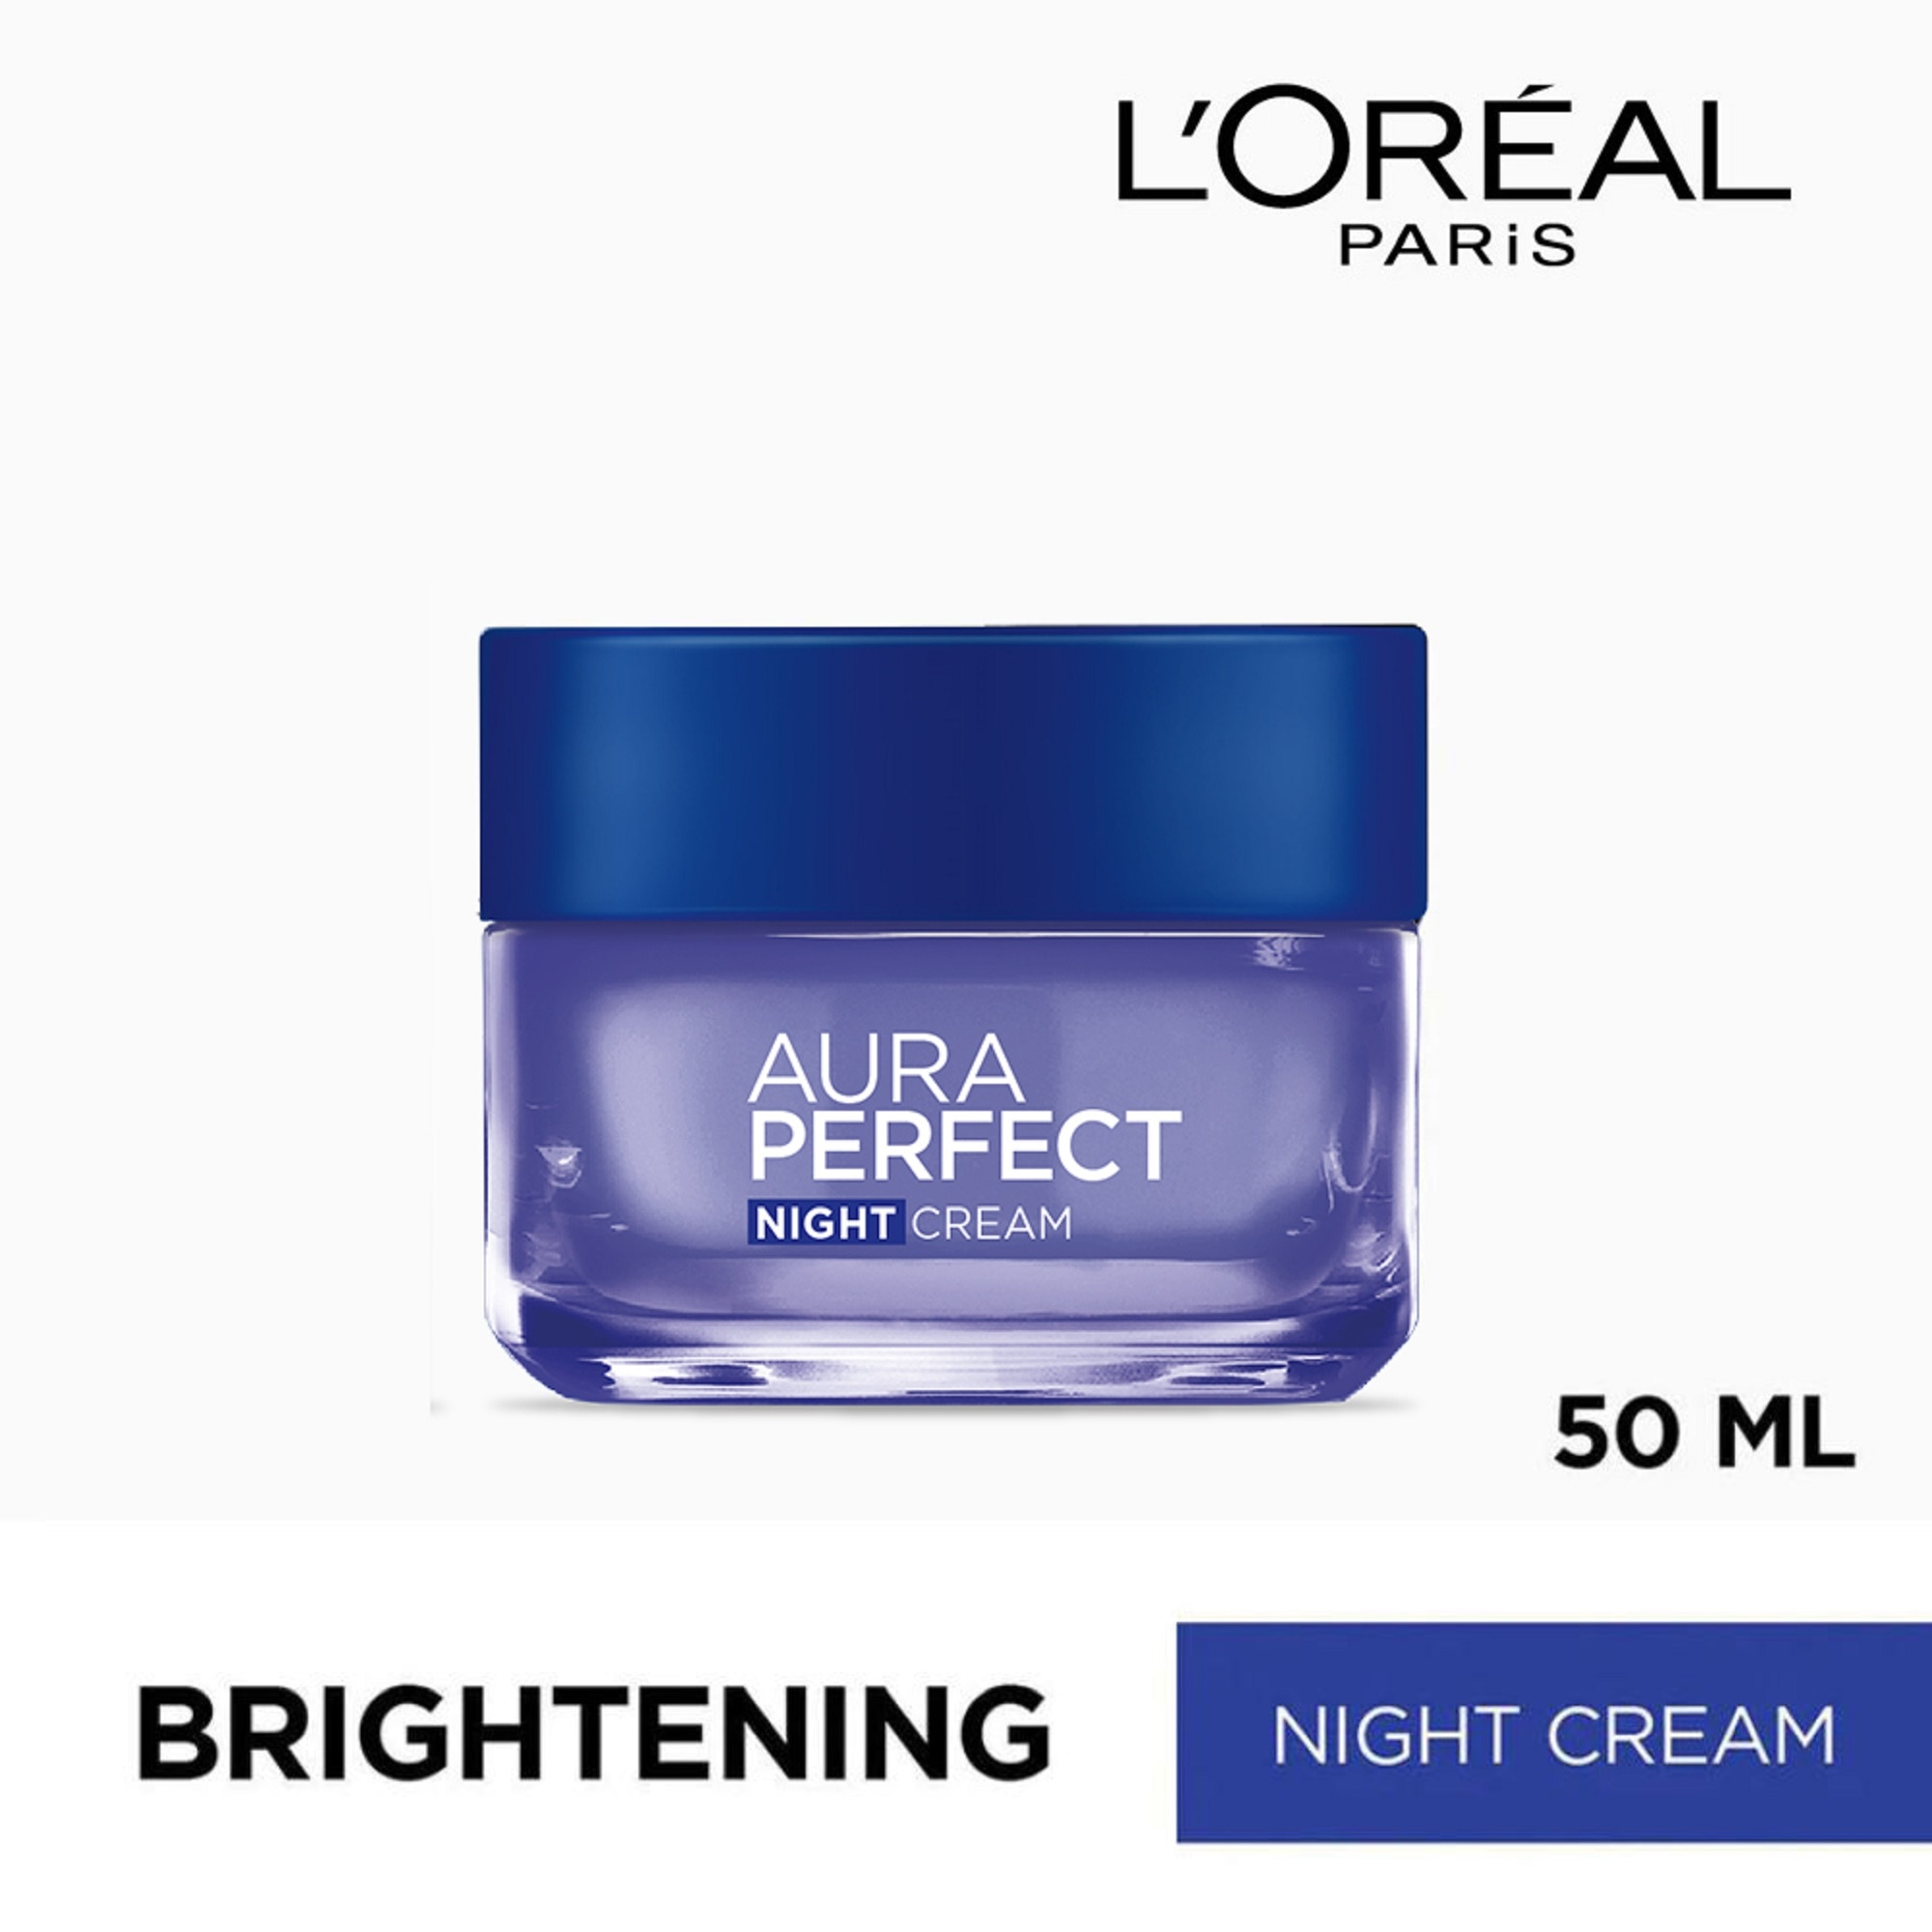 LOREALParis White Perfect - Night Cream 50mL,For WomenFree (1) Watsons Dermaction Plus Antiacne St20x2 for every purchase of Skin Care products